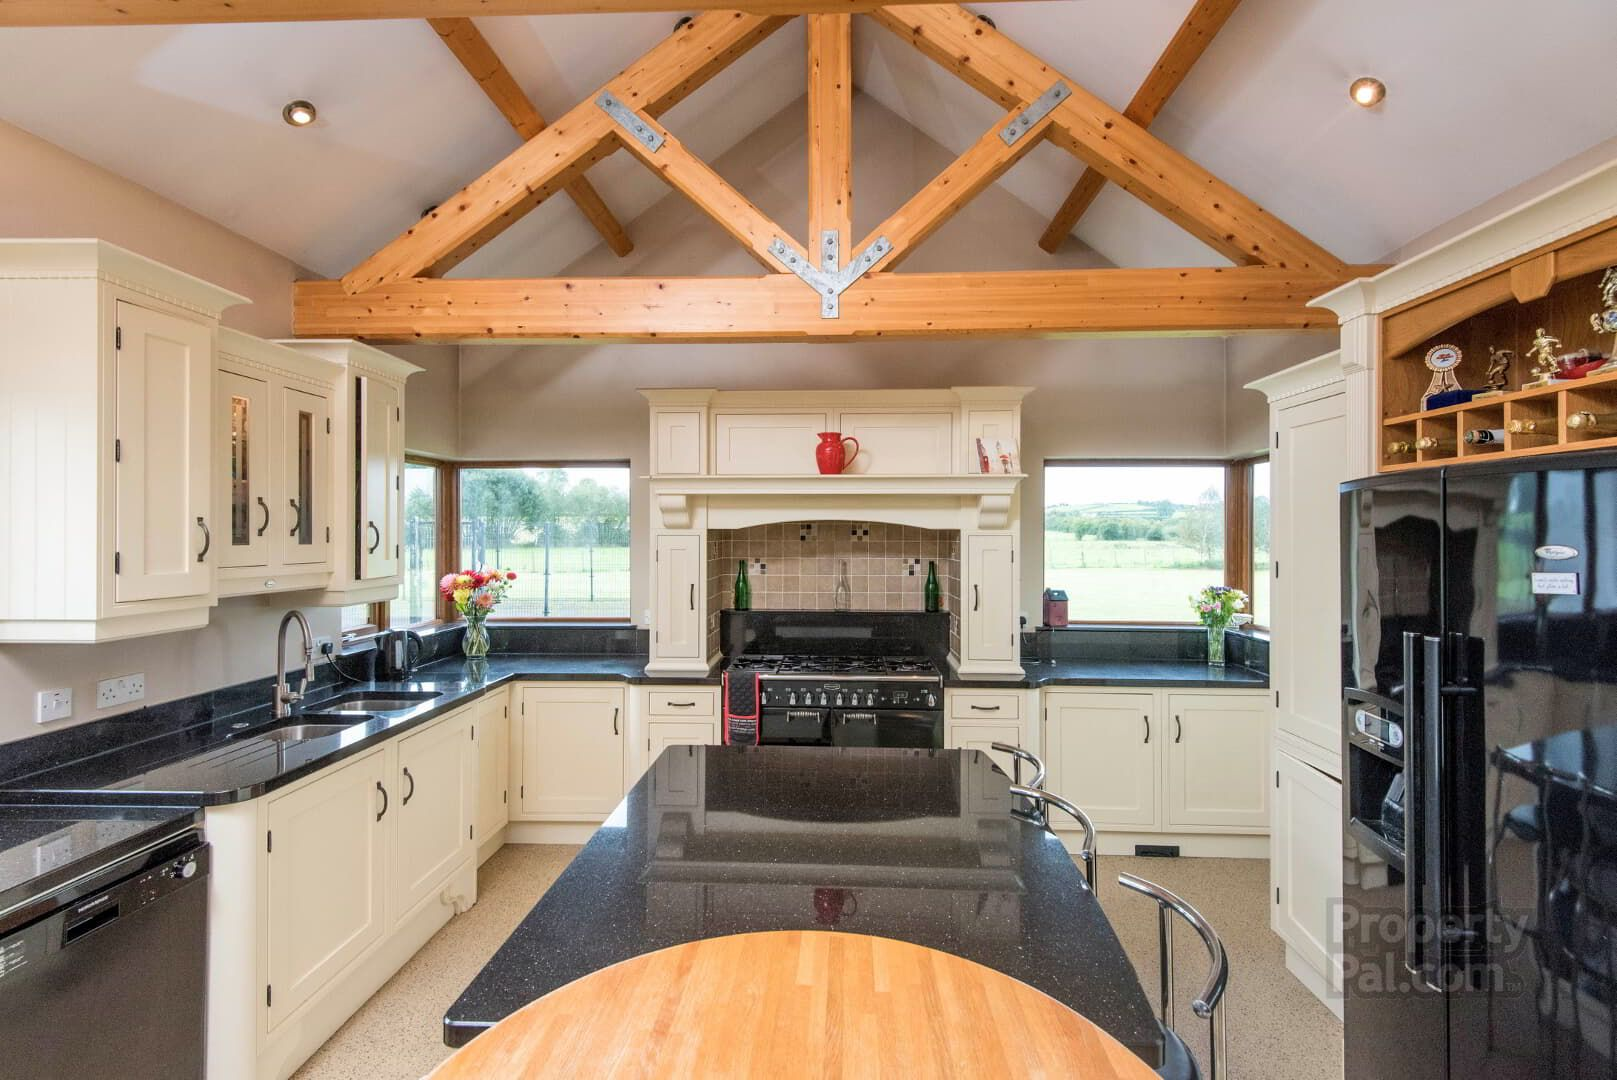 11 Drumard Cross Road, Dungannon Kitchen, Property for